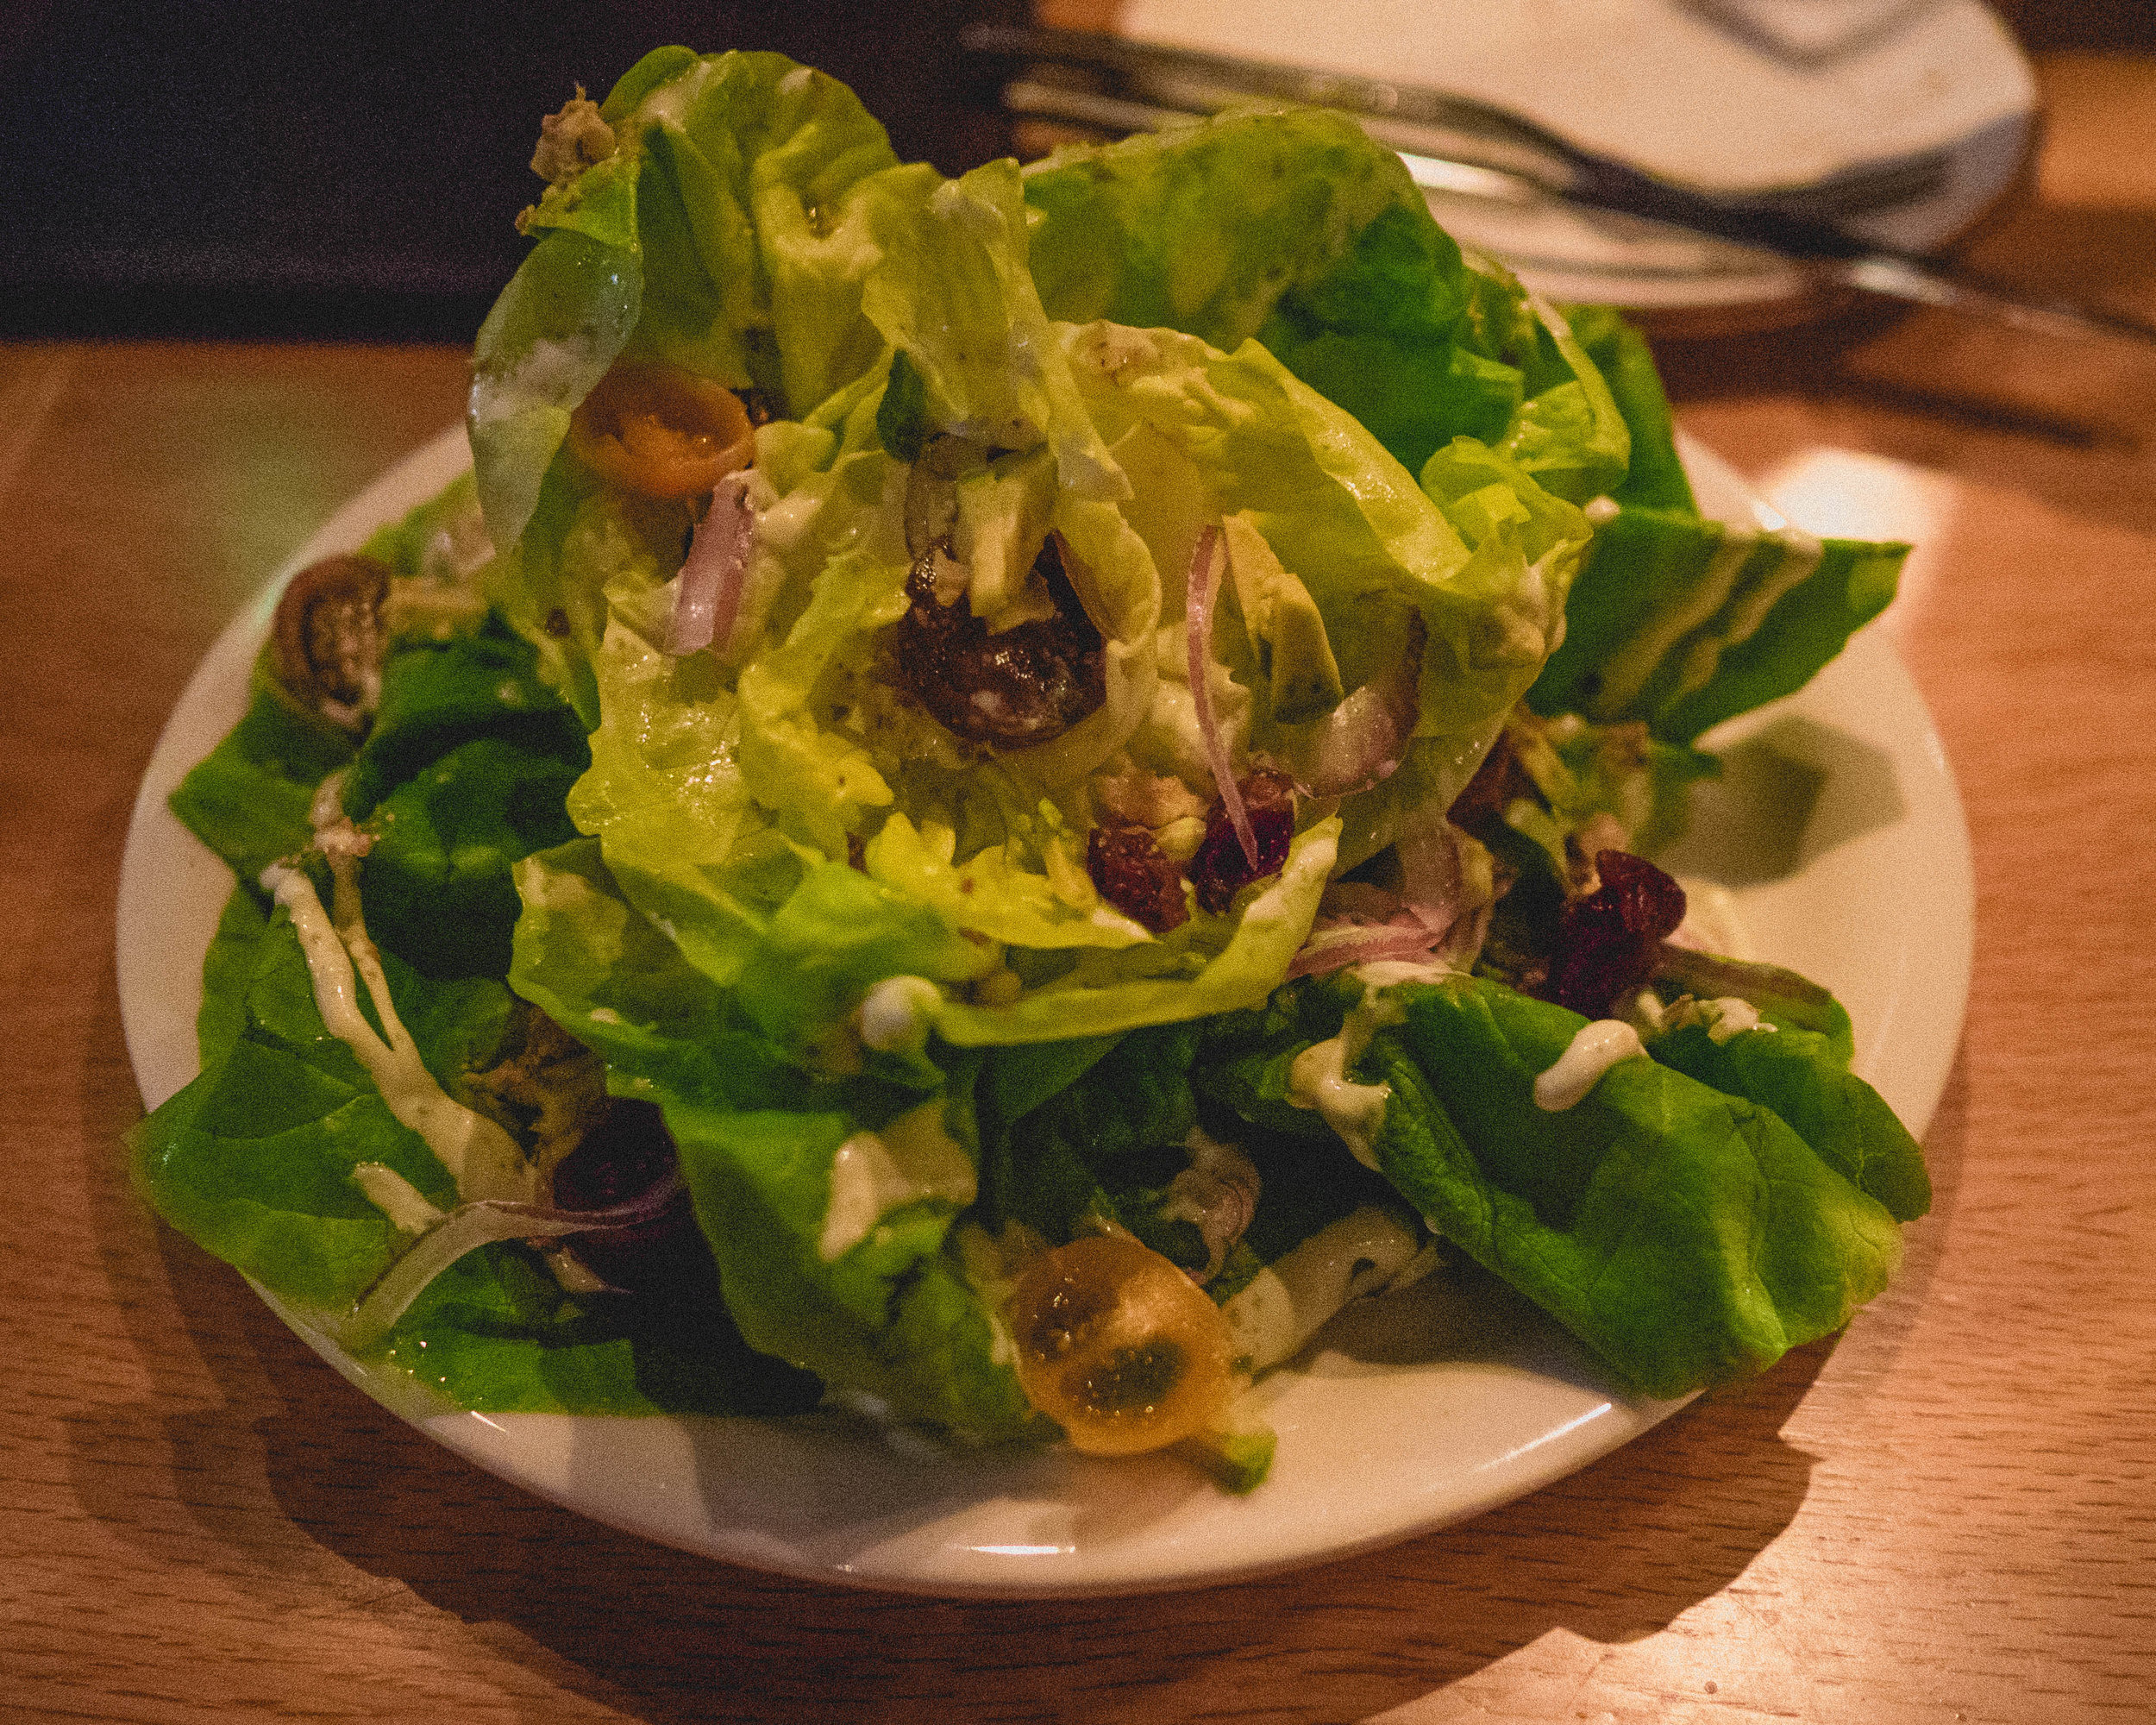 butter lettuce , avocado, heirloom tomato, red onions, candied walnuts, dried cranberries, creamy tarragon dressing.